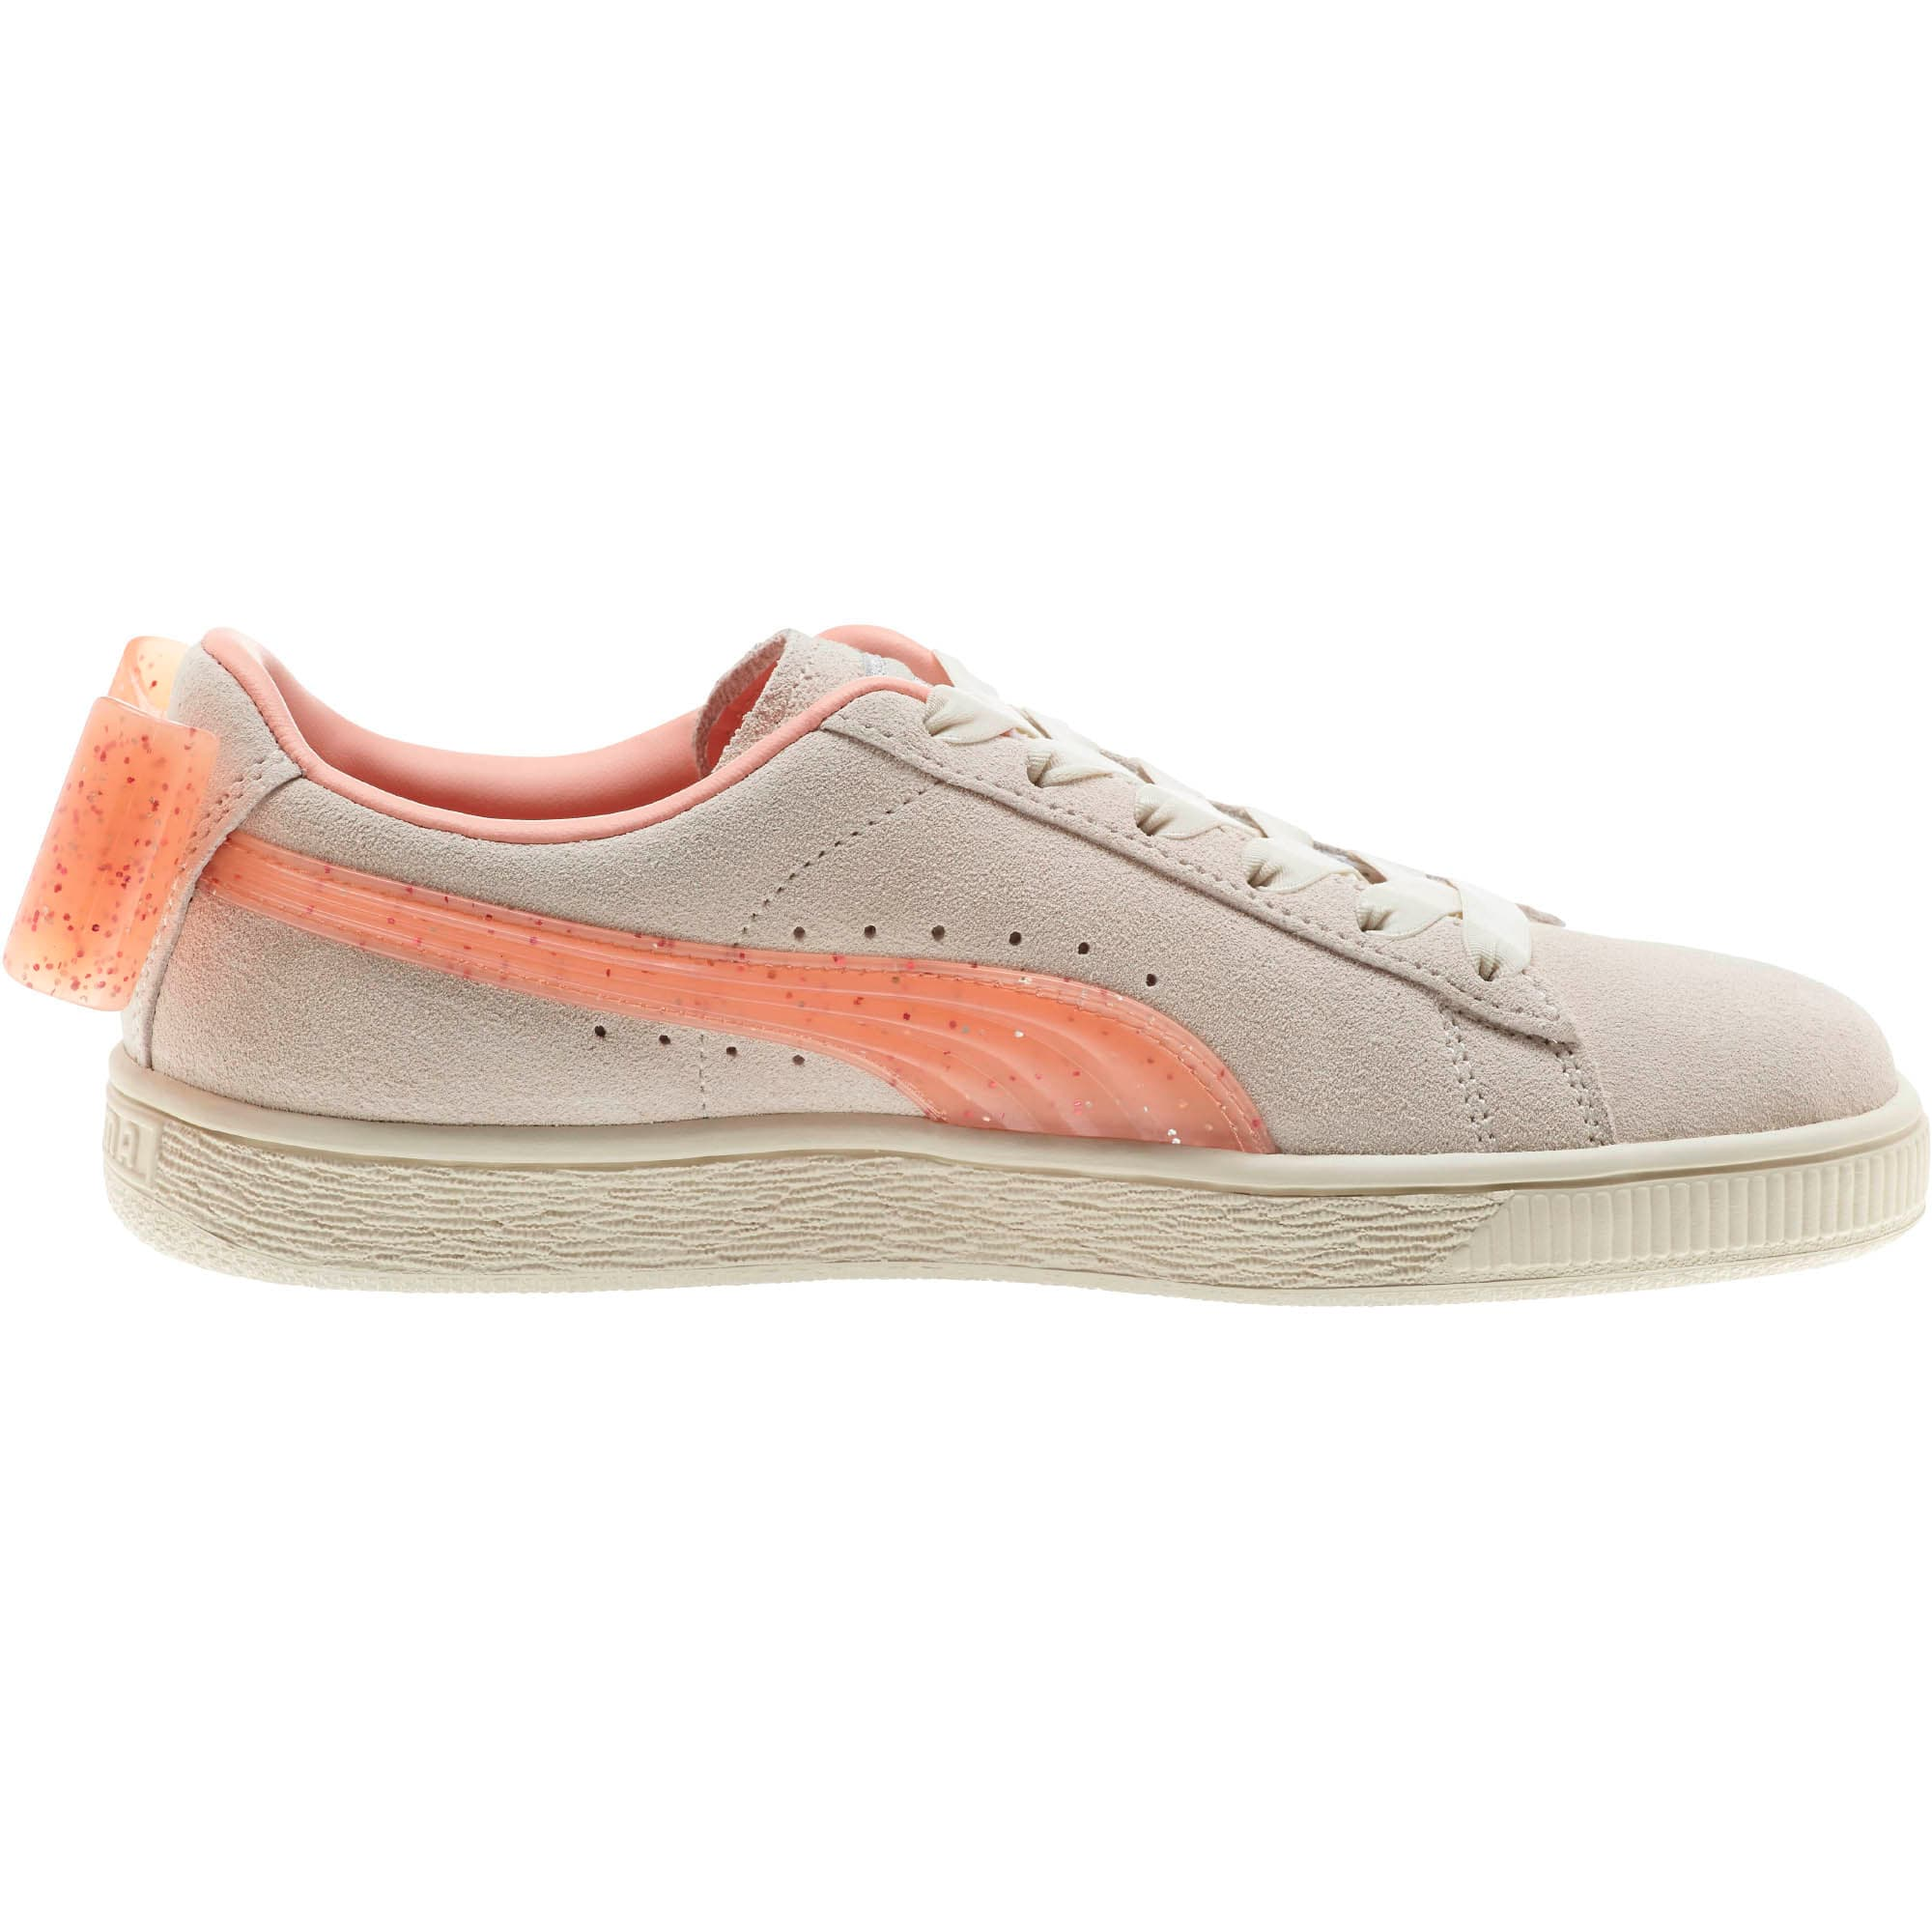 Miniatura 4 de Zapatos deportivos Suede Jelly Bow JR, Whis White-Peach Bud-Silver, mediano